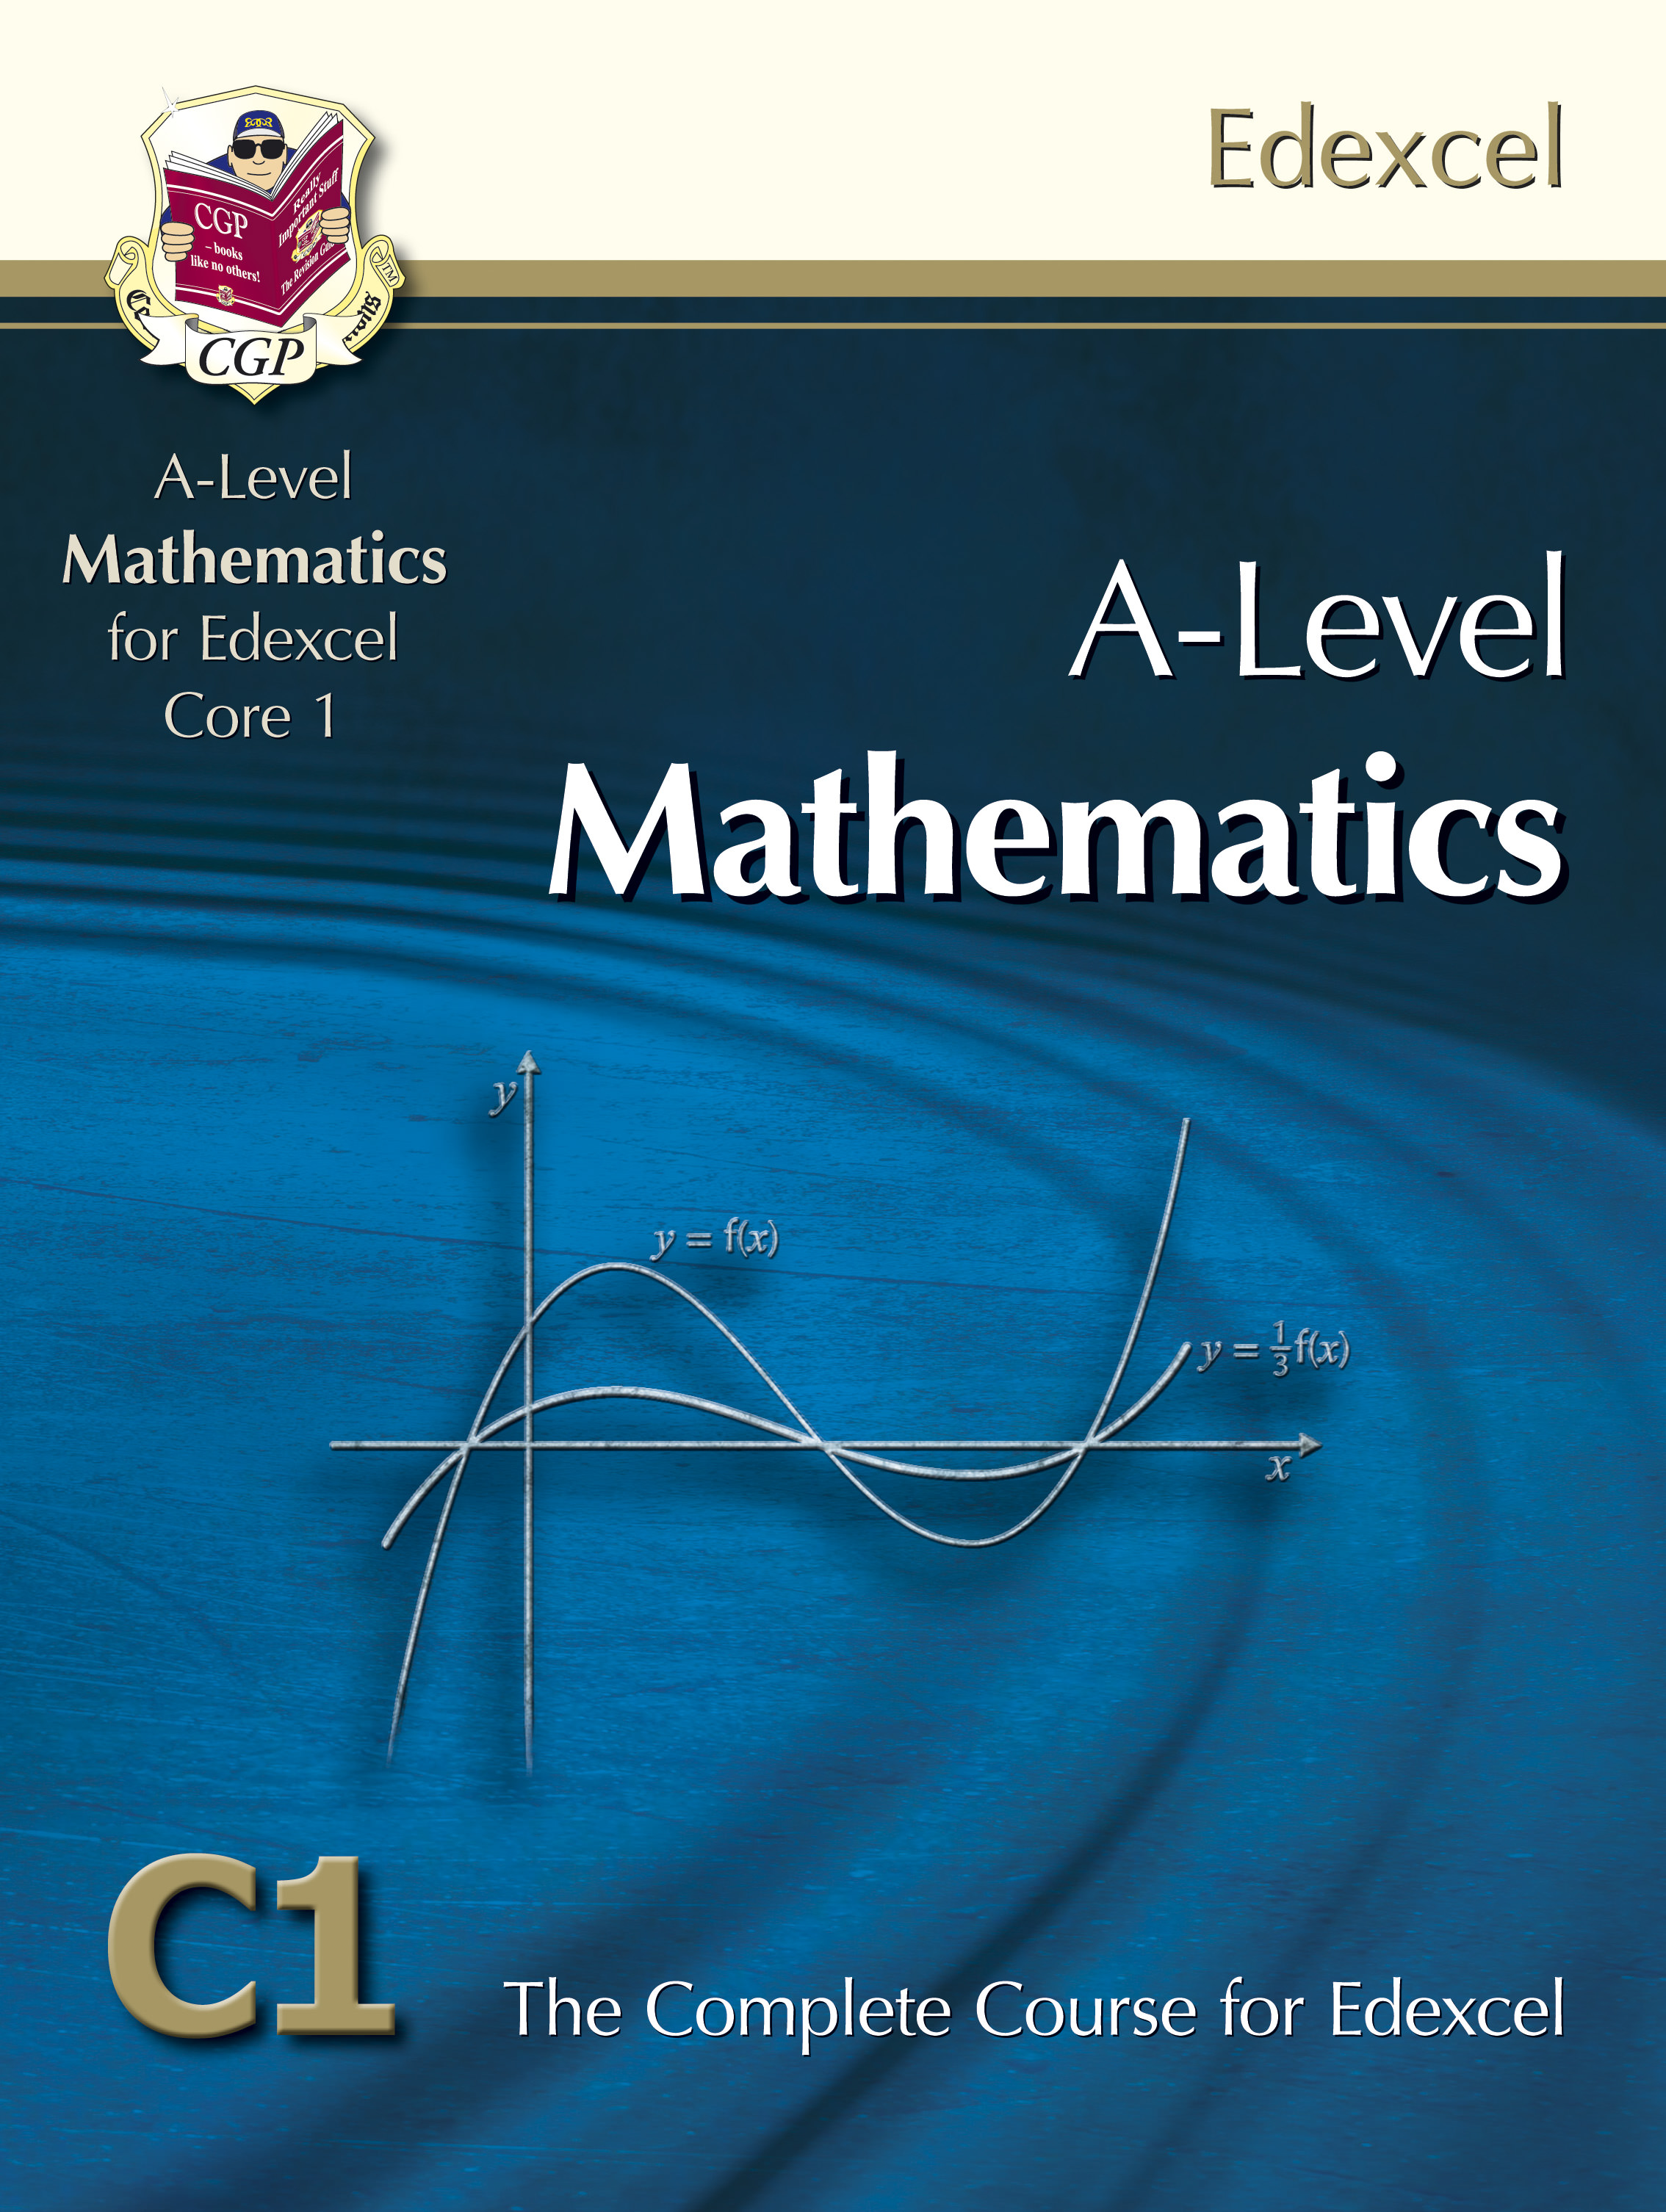 MEC1T51DK - AS-Level Maths for Edexcel - Core 1: Student Book